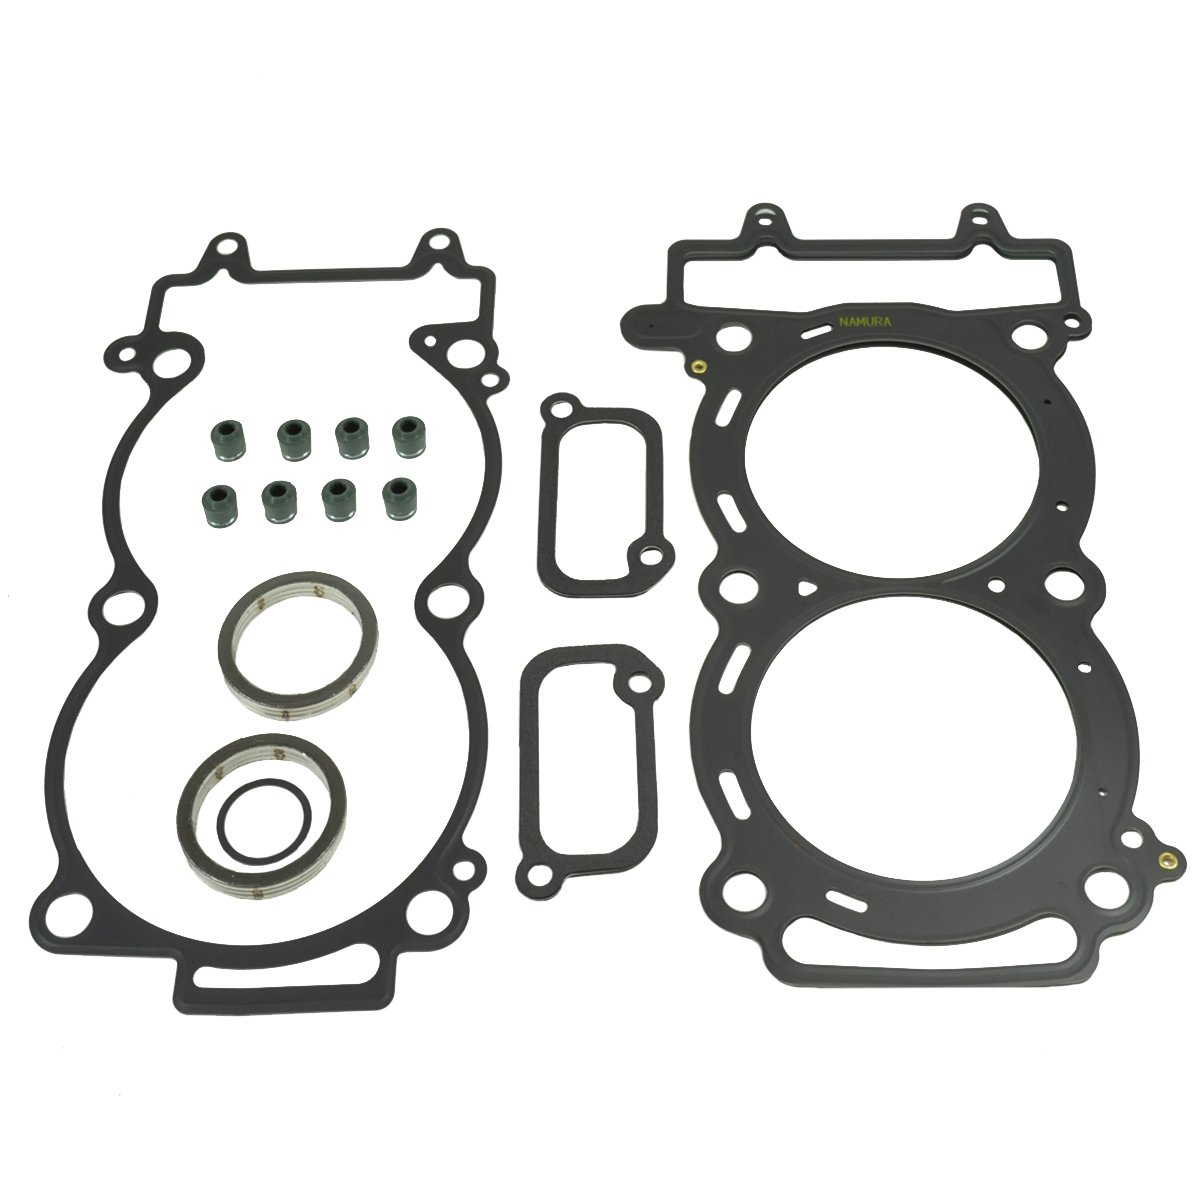 Namura, NA-50090T, Top End Gasket Kit 2011-2014 Polaris RZR 900 & RZR-4 900 Razor Namura Technologies